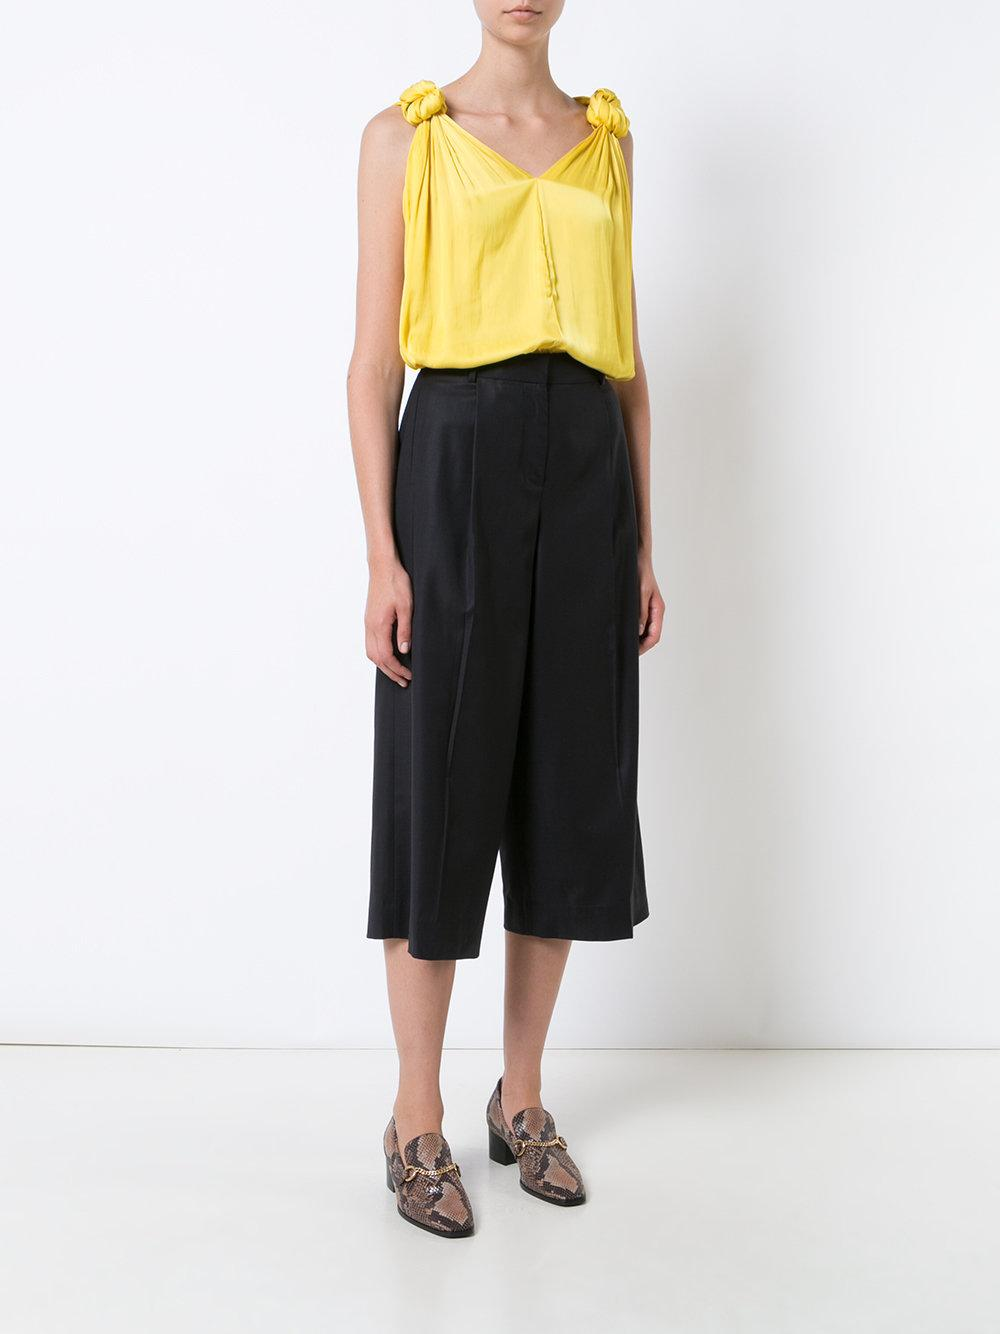 Lyst Smythe Knot Blouse In Yellow